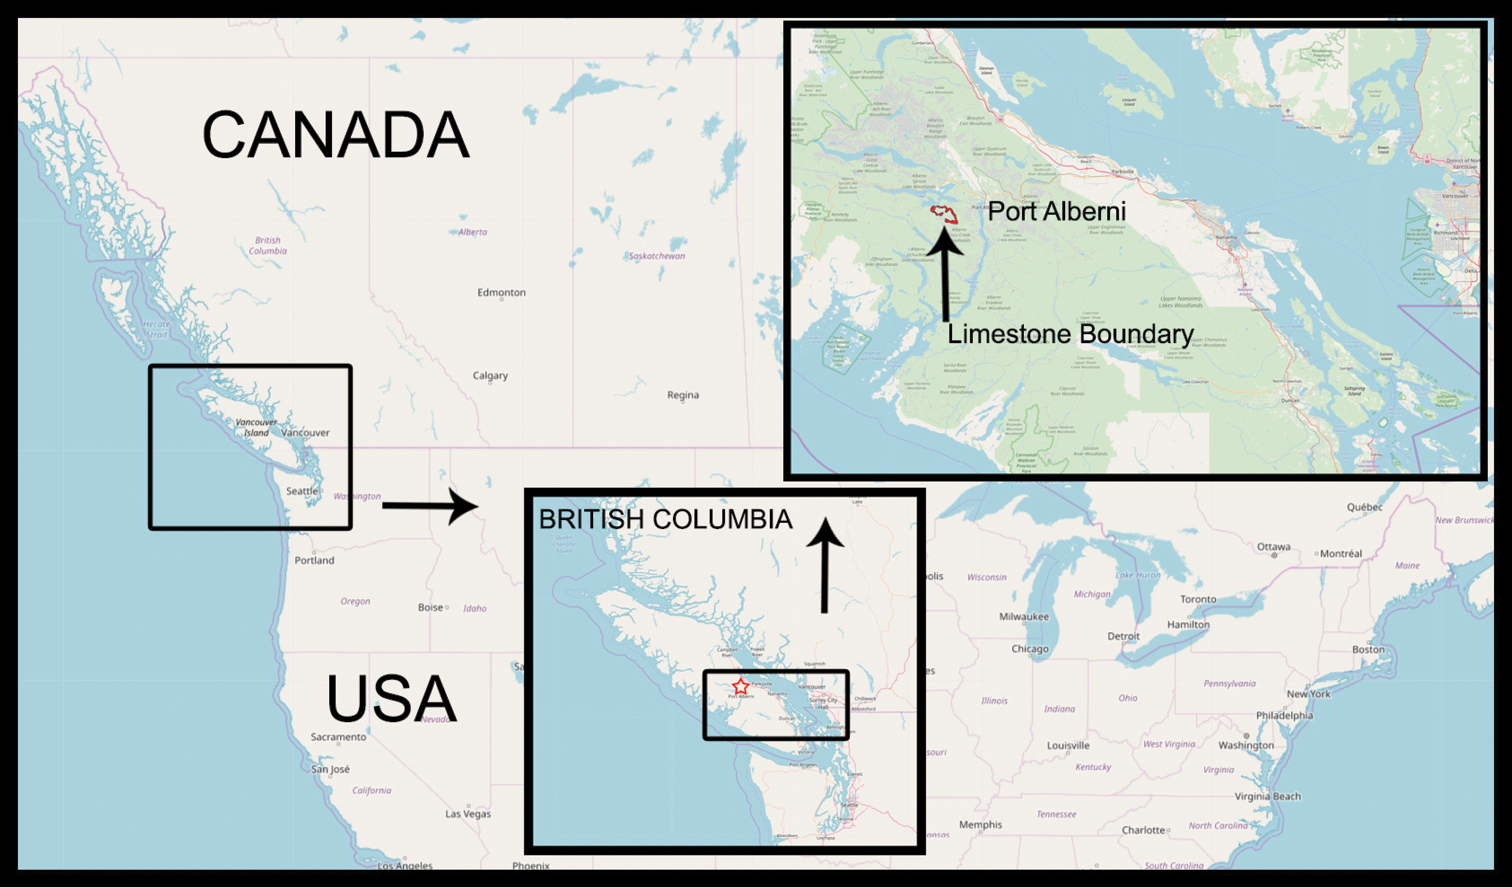 Calgary Canada Map Of North America.The Cave Dwelling Dipluran Diplura Campodeidae On The Edge Of The